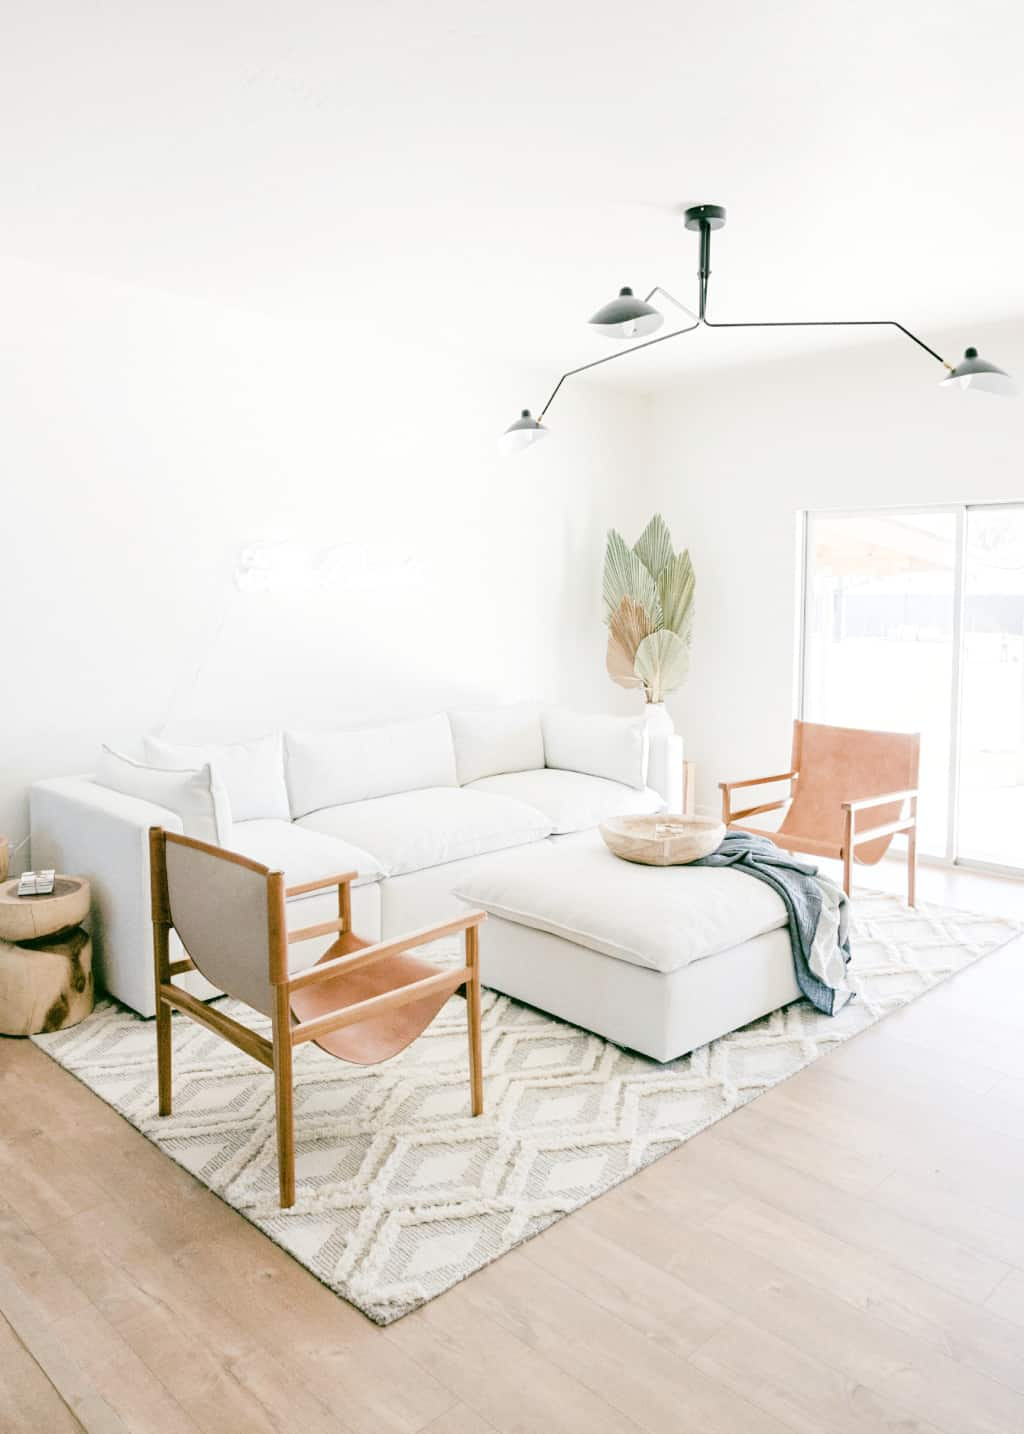 A cozy white minimalist living room with modern decor